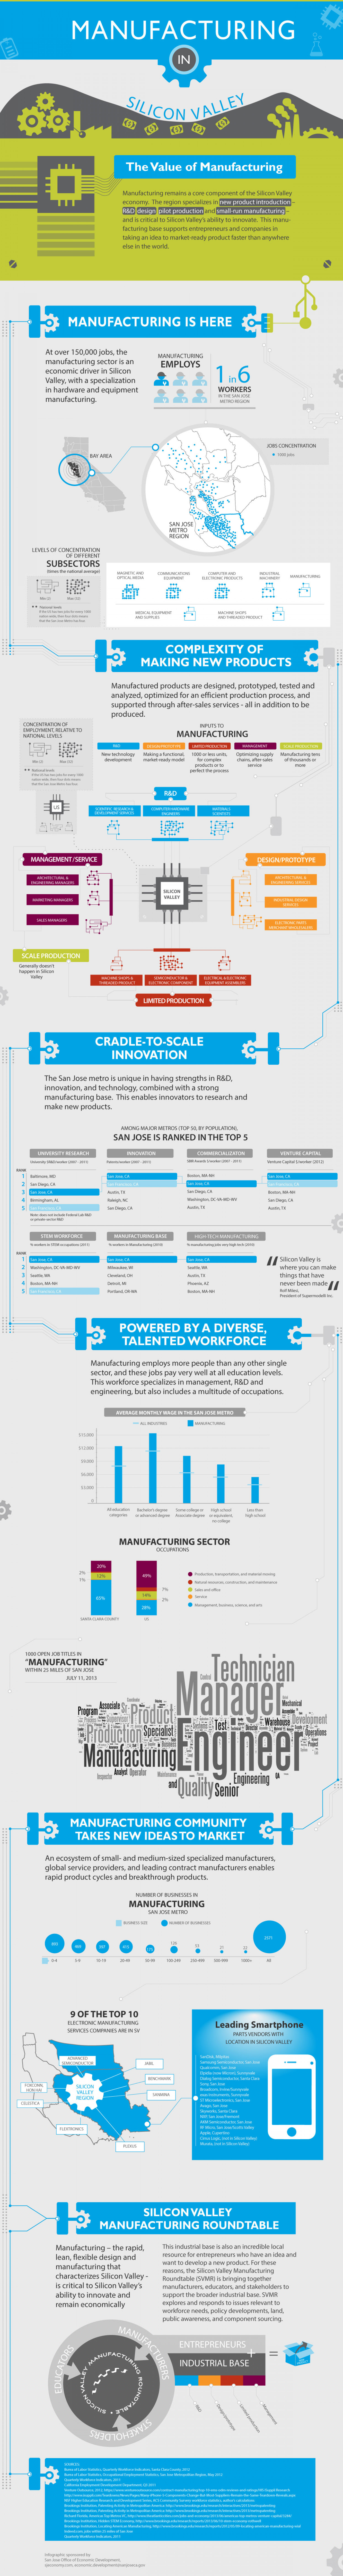 Manufacturing in Silicon Valley Infographic